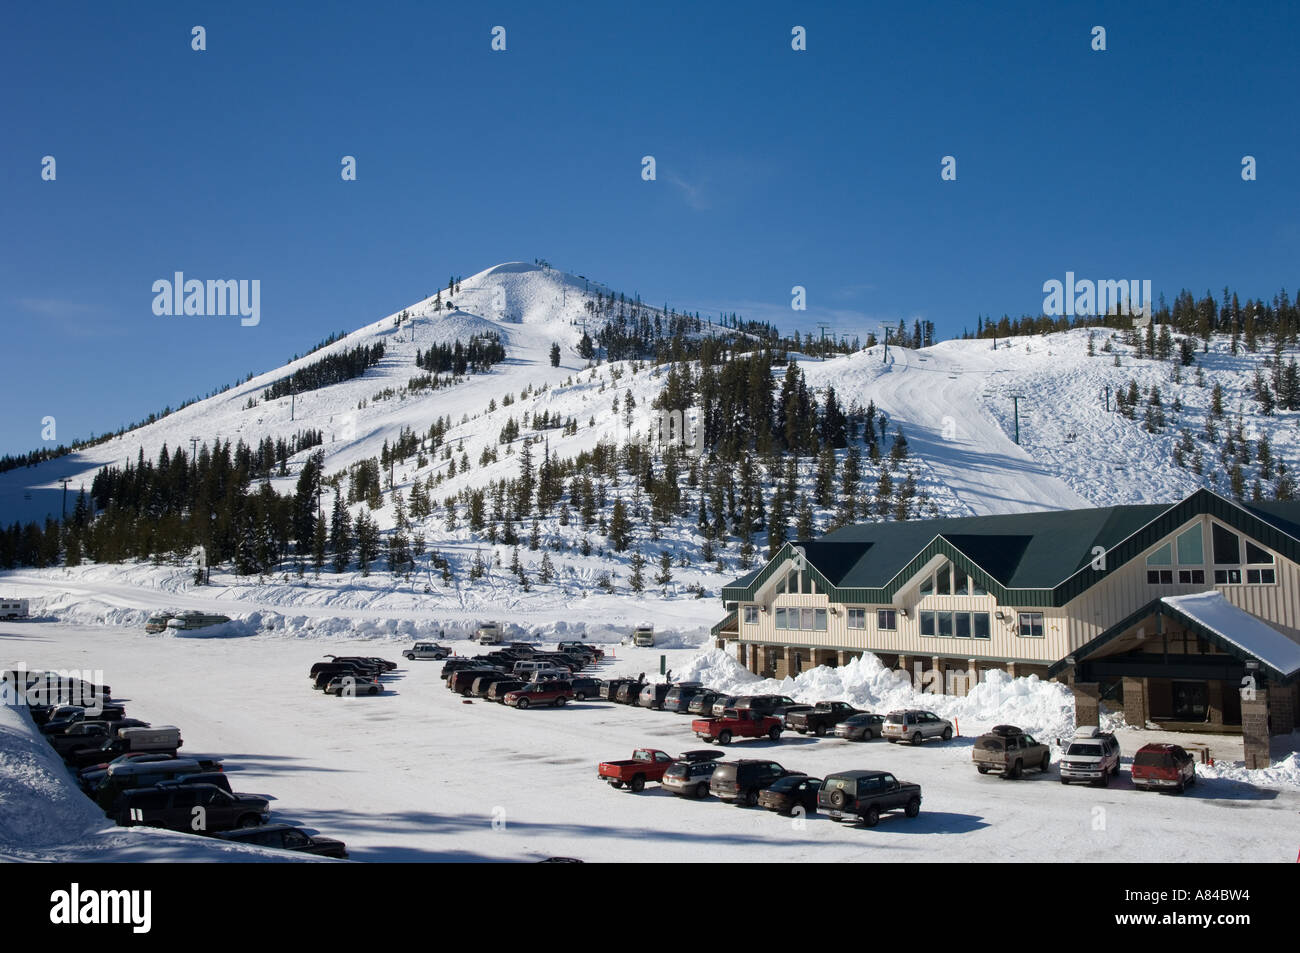 hoodoo ski area lodge and parking lot at hoodoo mountain resort